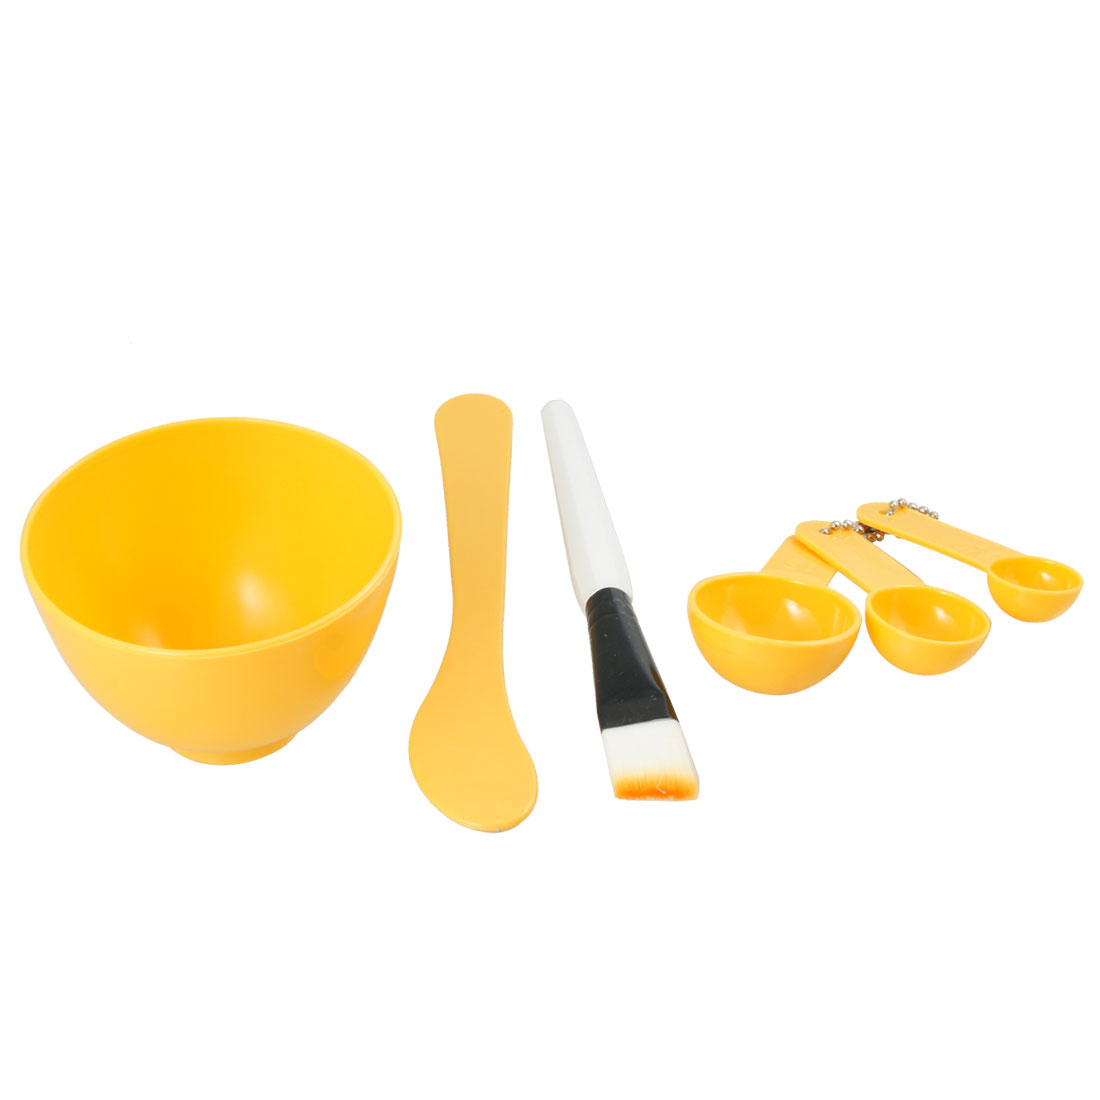 Ladies Facial Beauty Skin Care Mask Mixing Bowl Stick Brush Gauge 4 in 1 Yellow